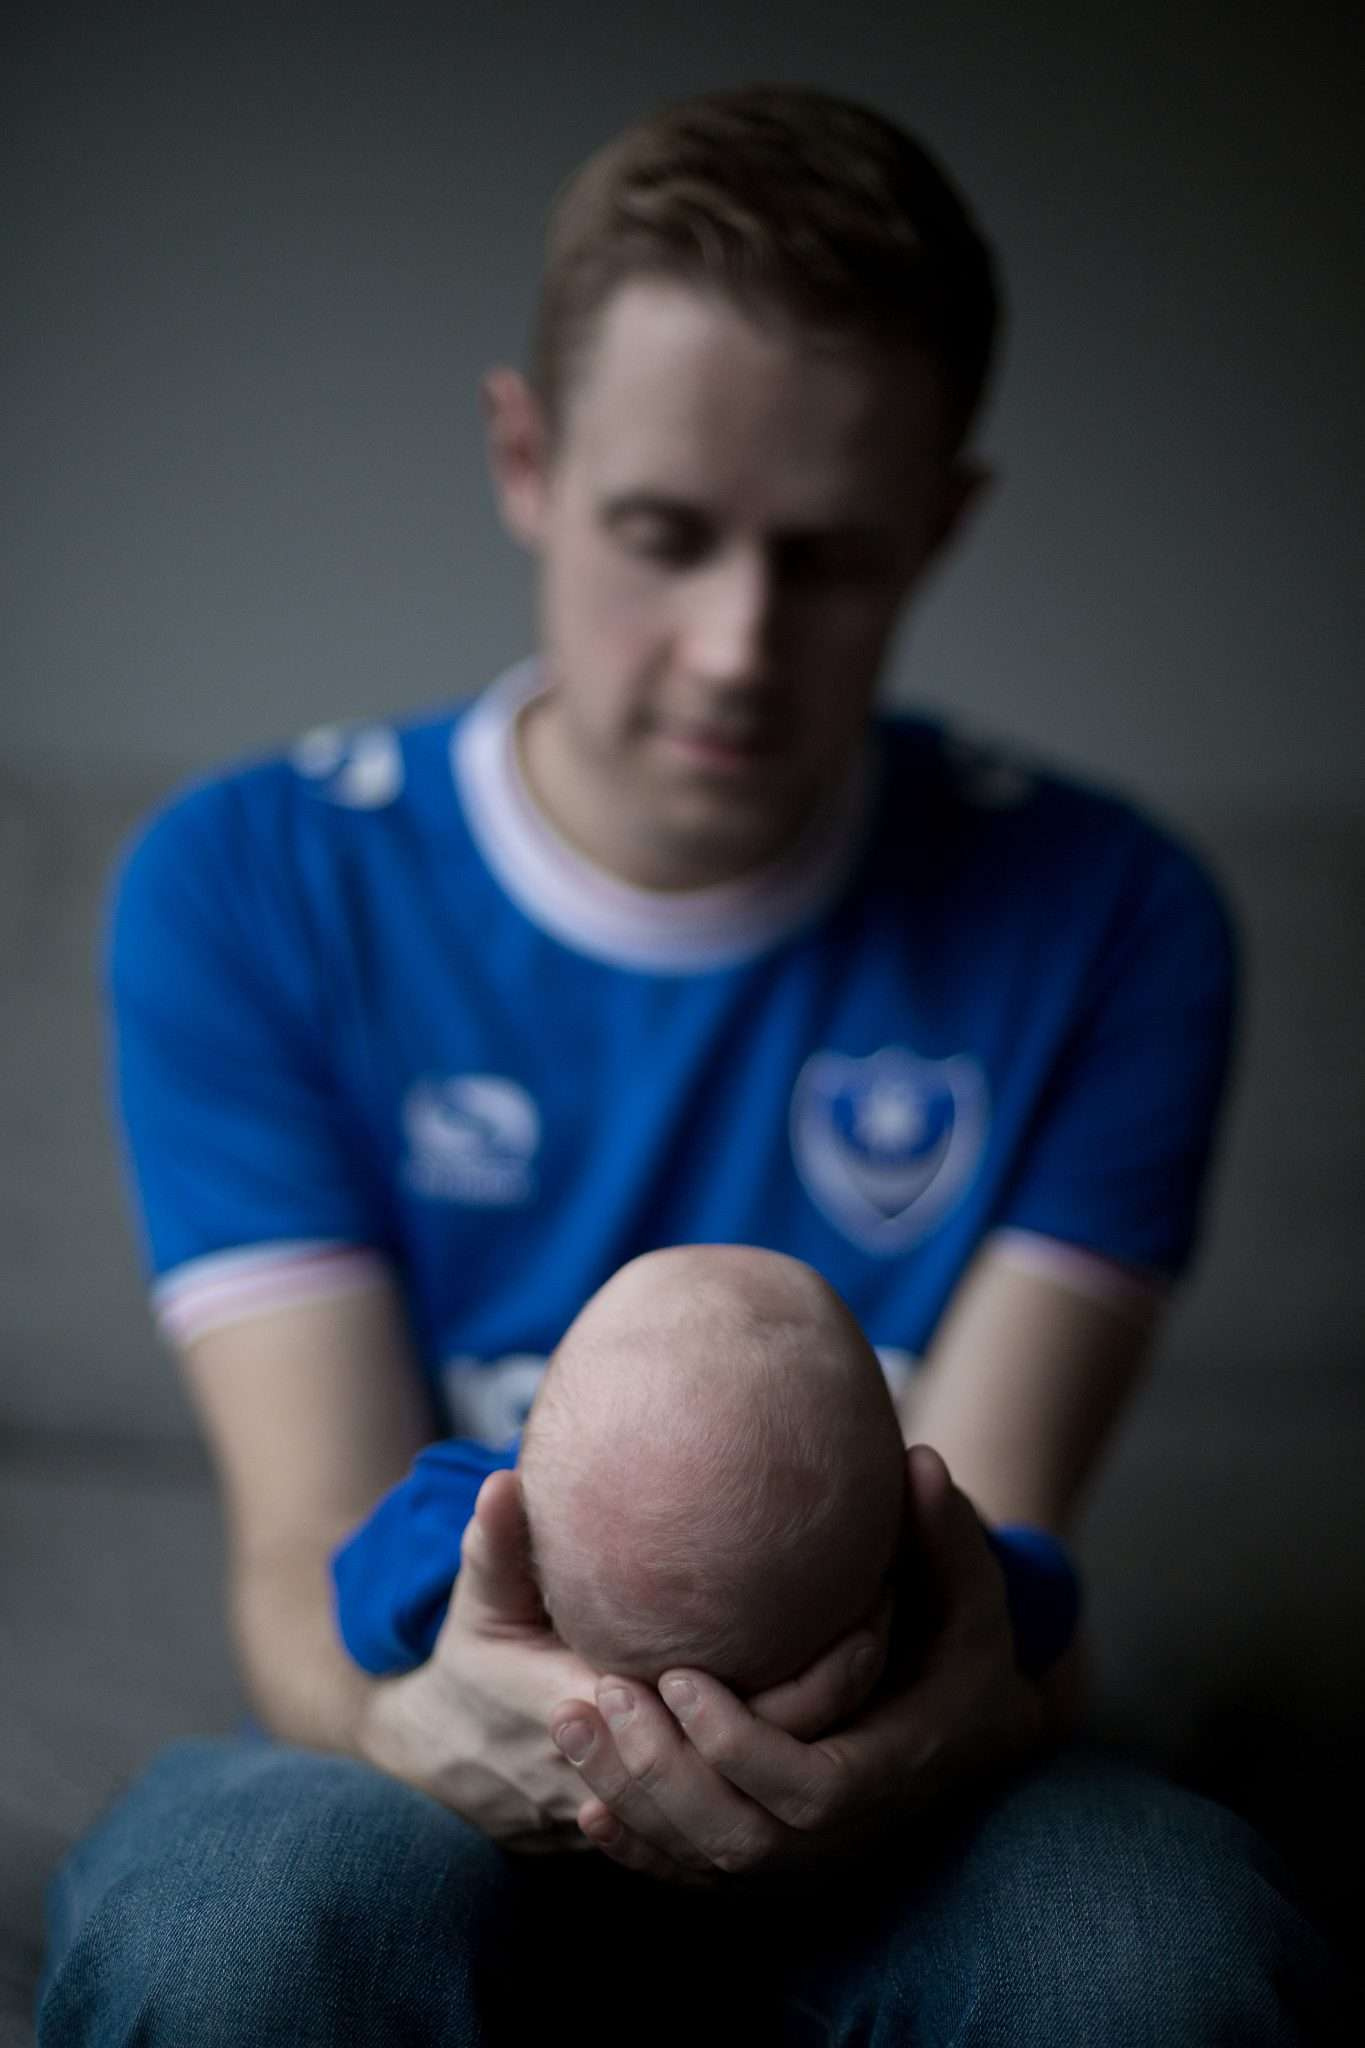 A photo of a man holding a baby wearing a blue t-shirt